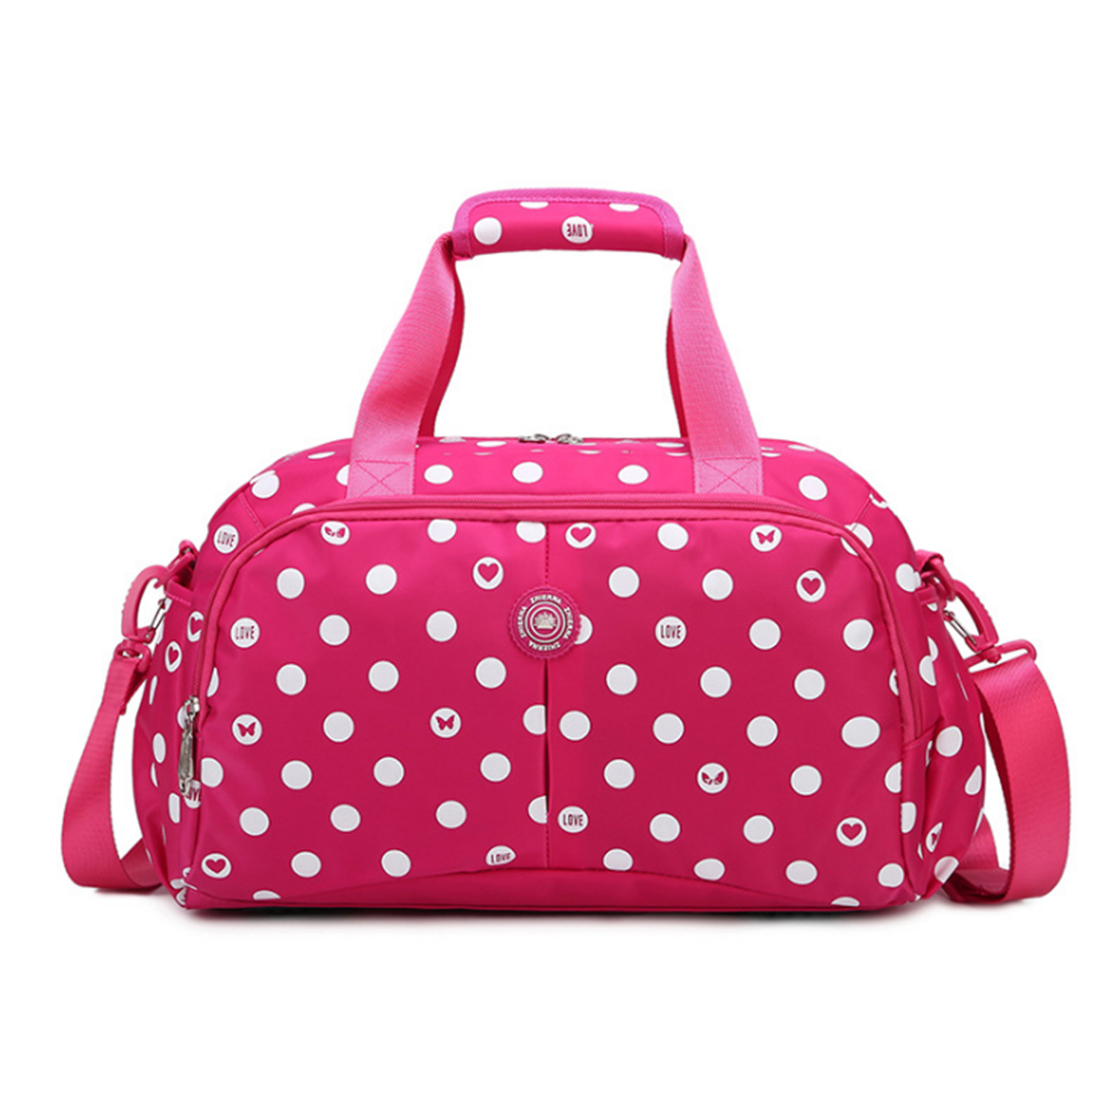 Duffelbags - Duffle Bags of every shape, size and price Fashion travel duffel bags